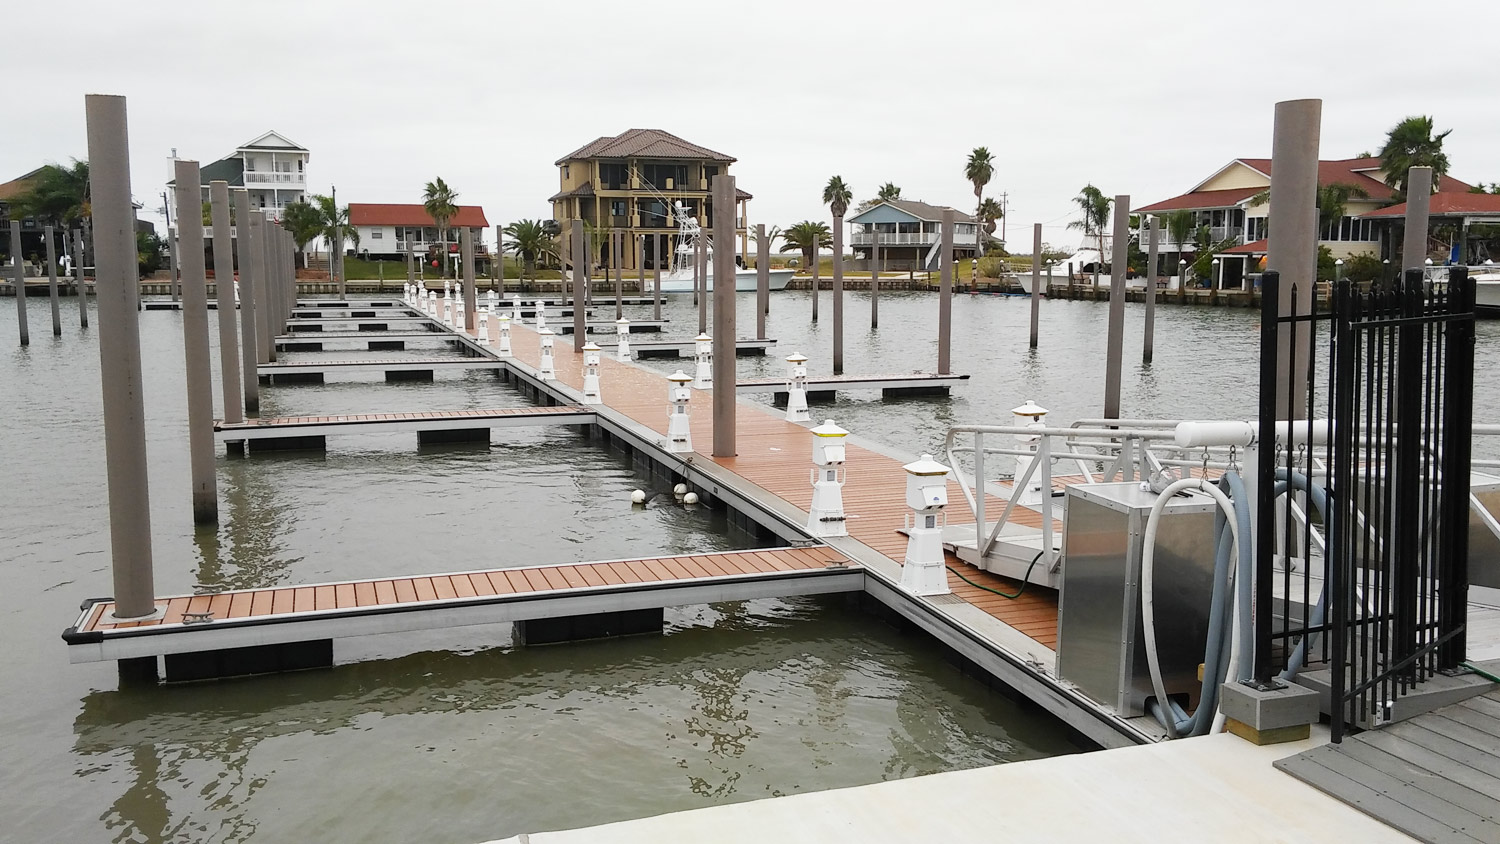 Pearson Pilings | Pilings for Commercial Marinas, Piers & Docks